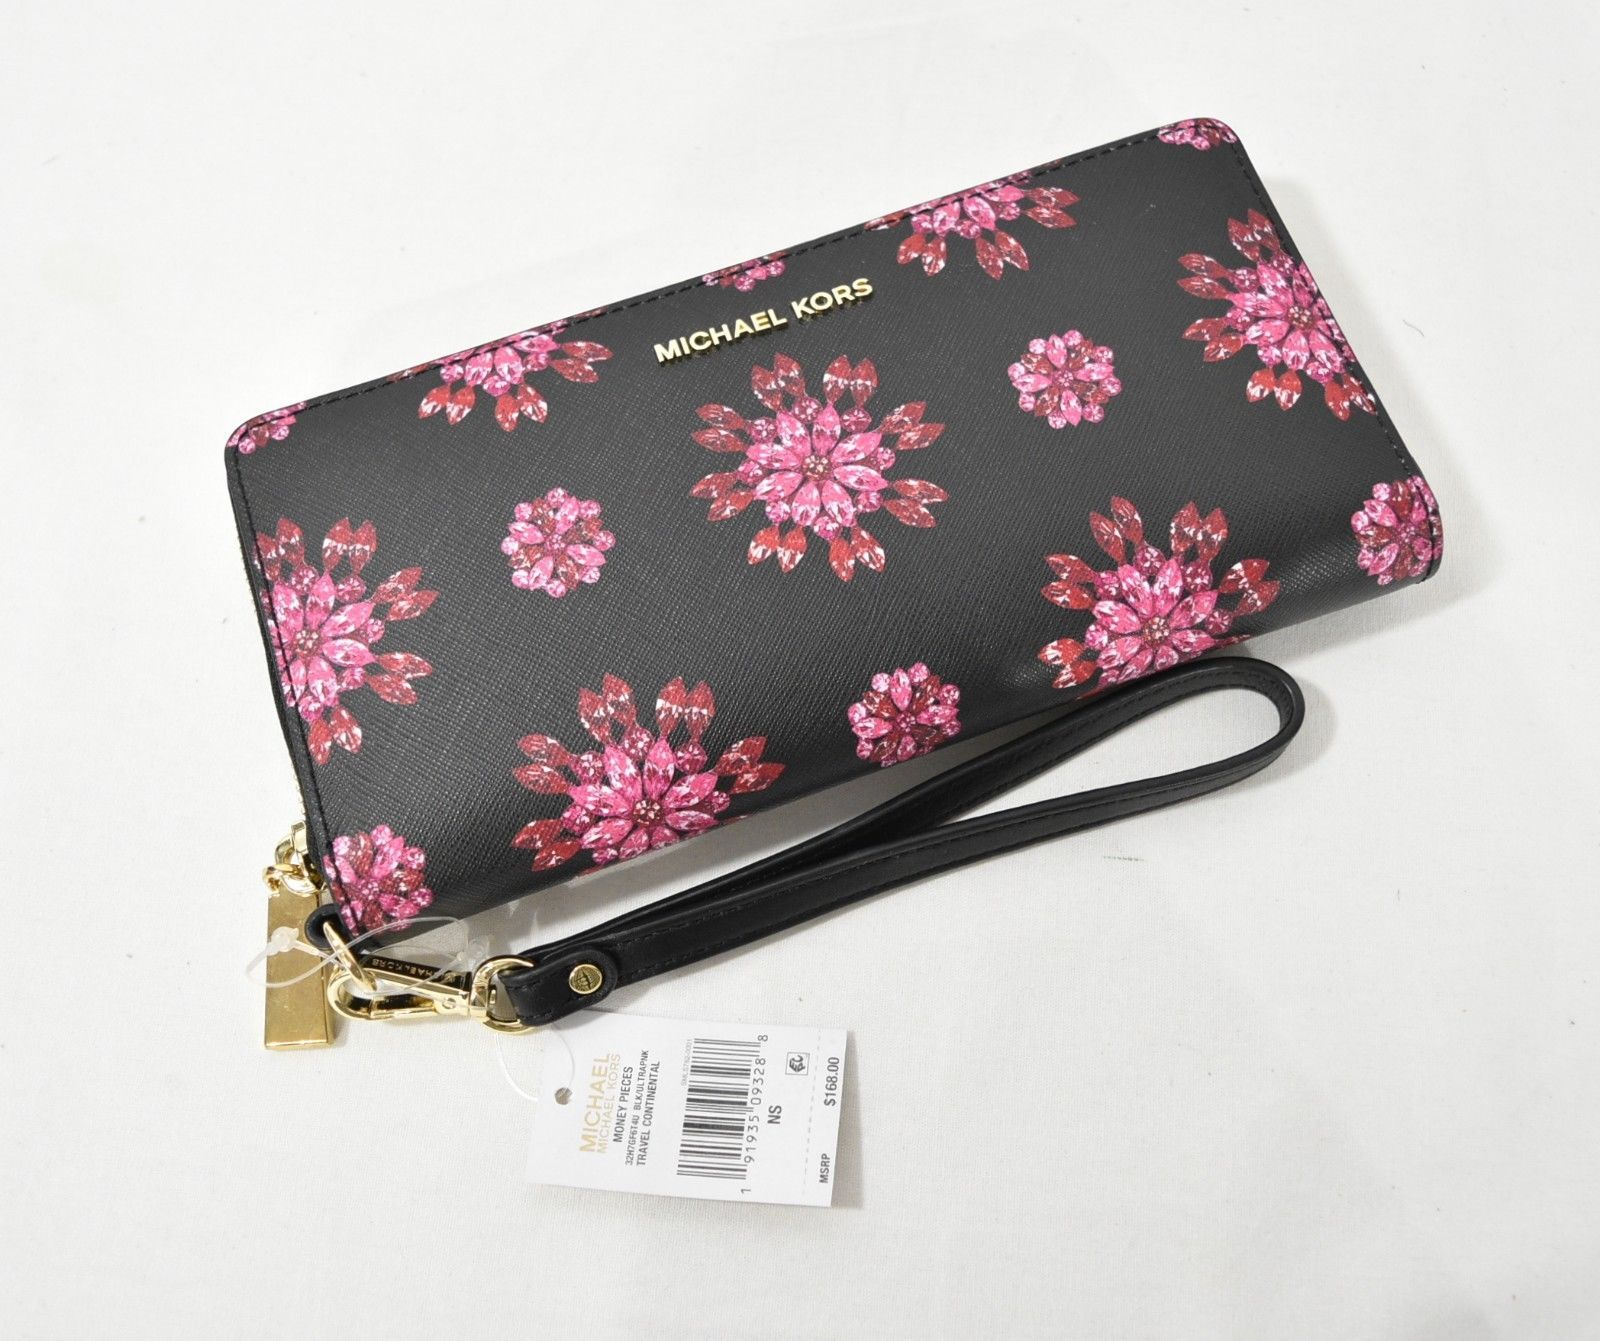 c9d0344559eb S l1600. S l1600. Michael Kors Money Pieces Travel Continental Wallet in  Black Ultra Pink Flowers